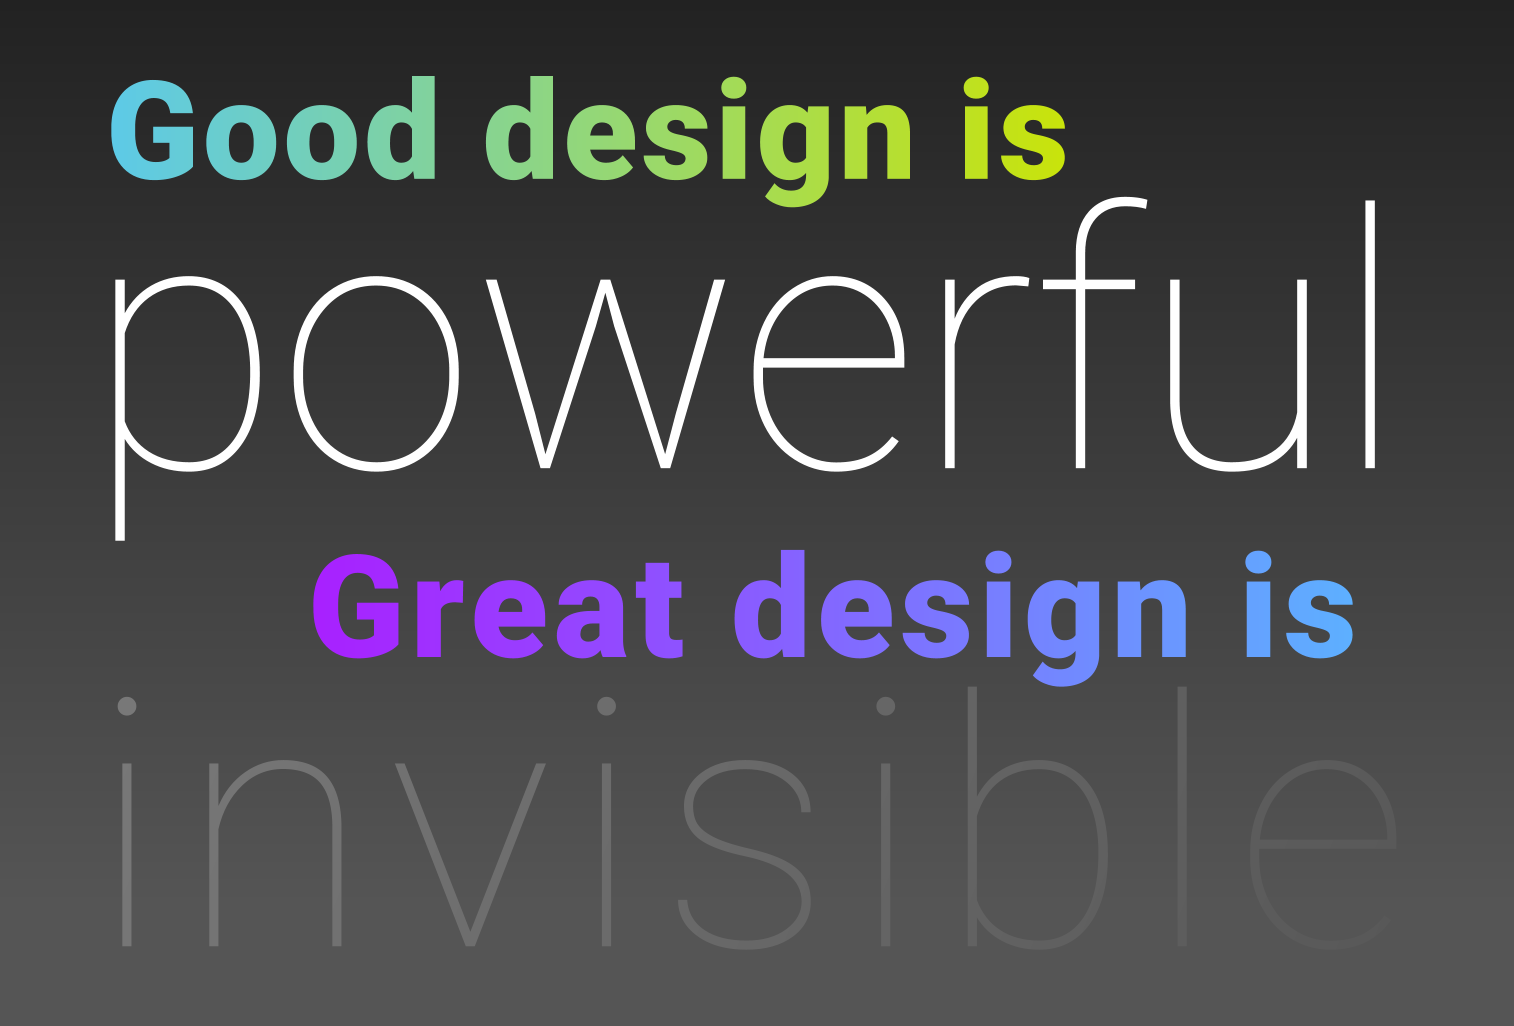 Good website design is powerful, great web design is invisible